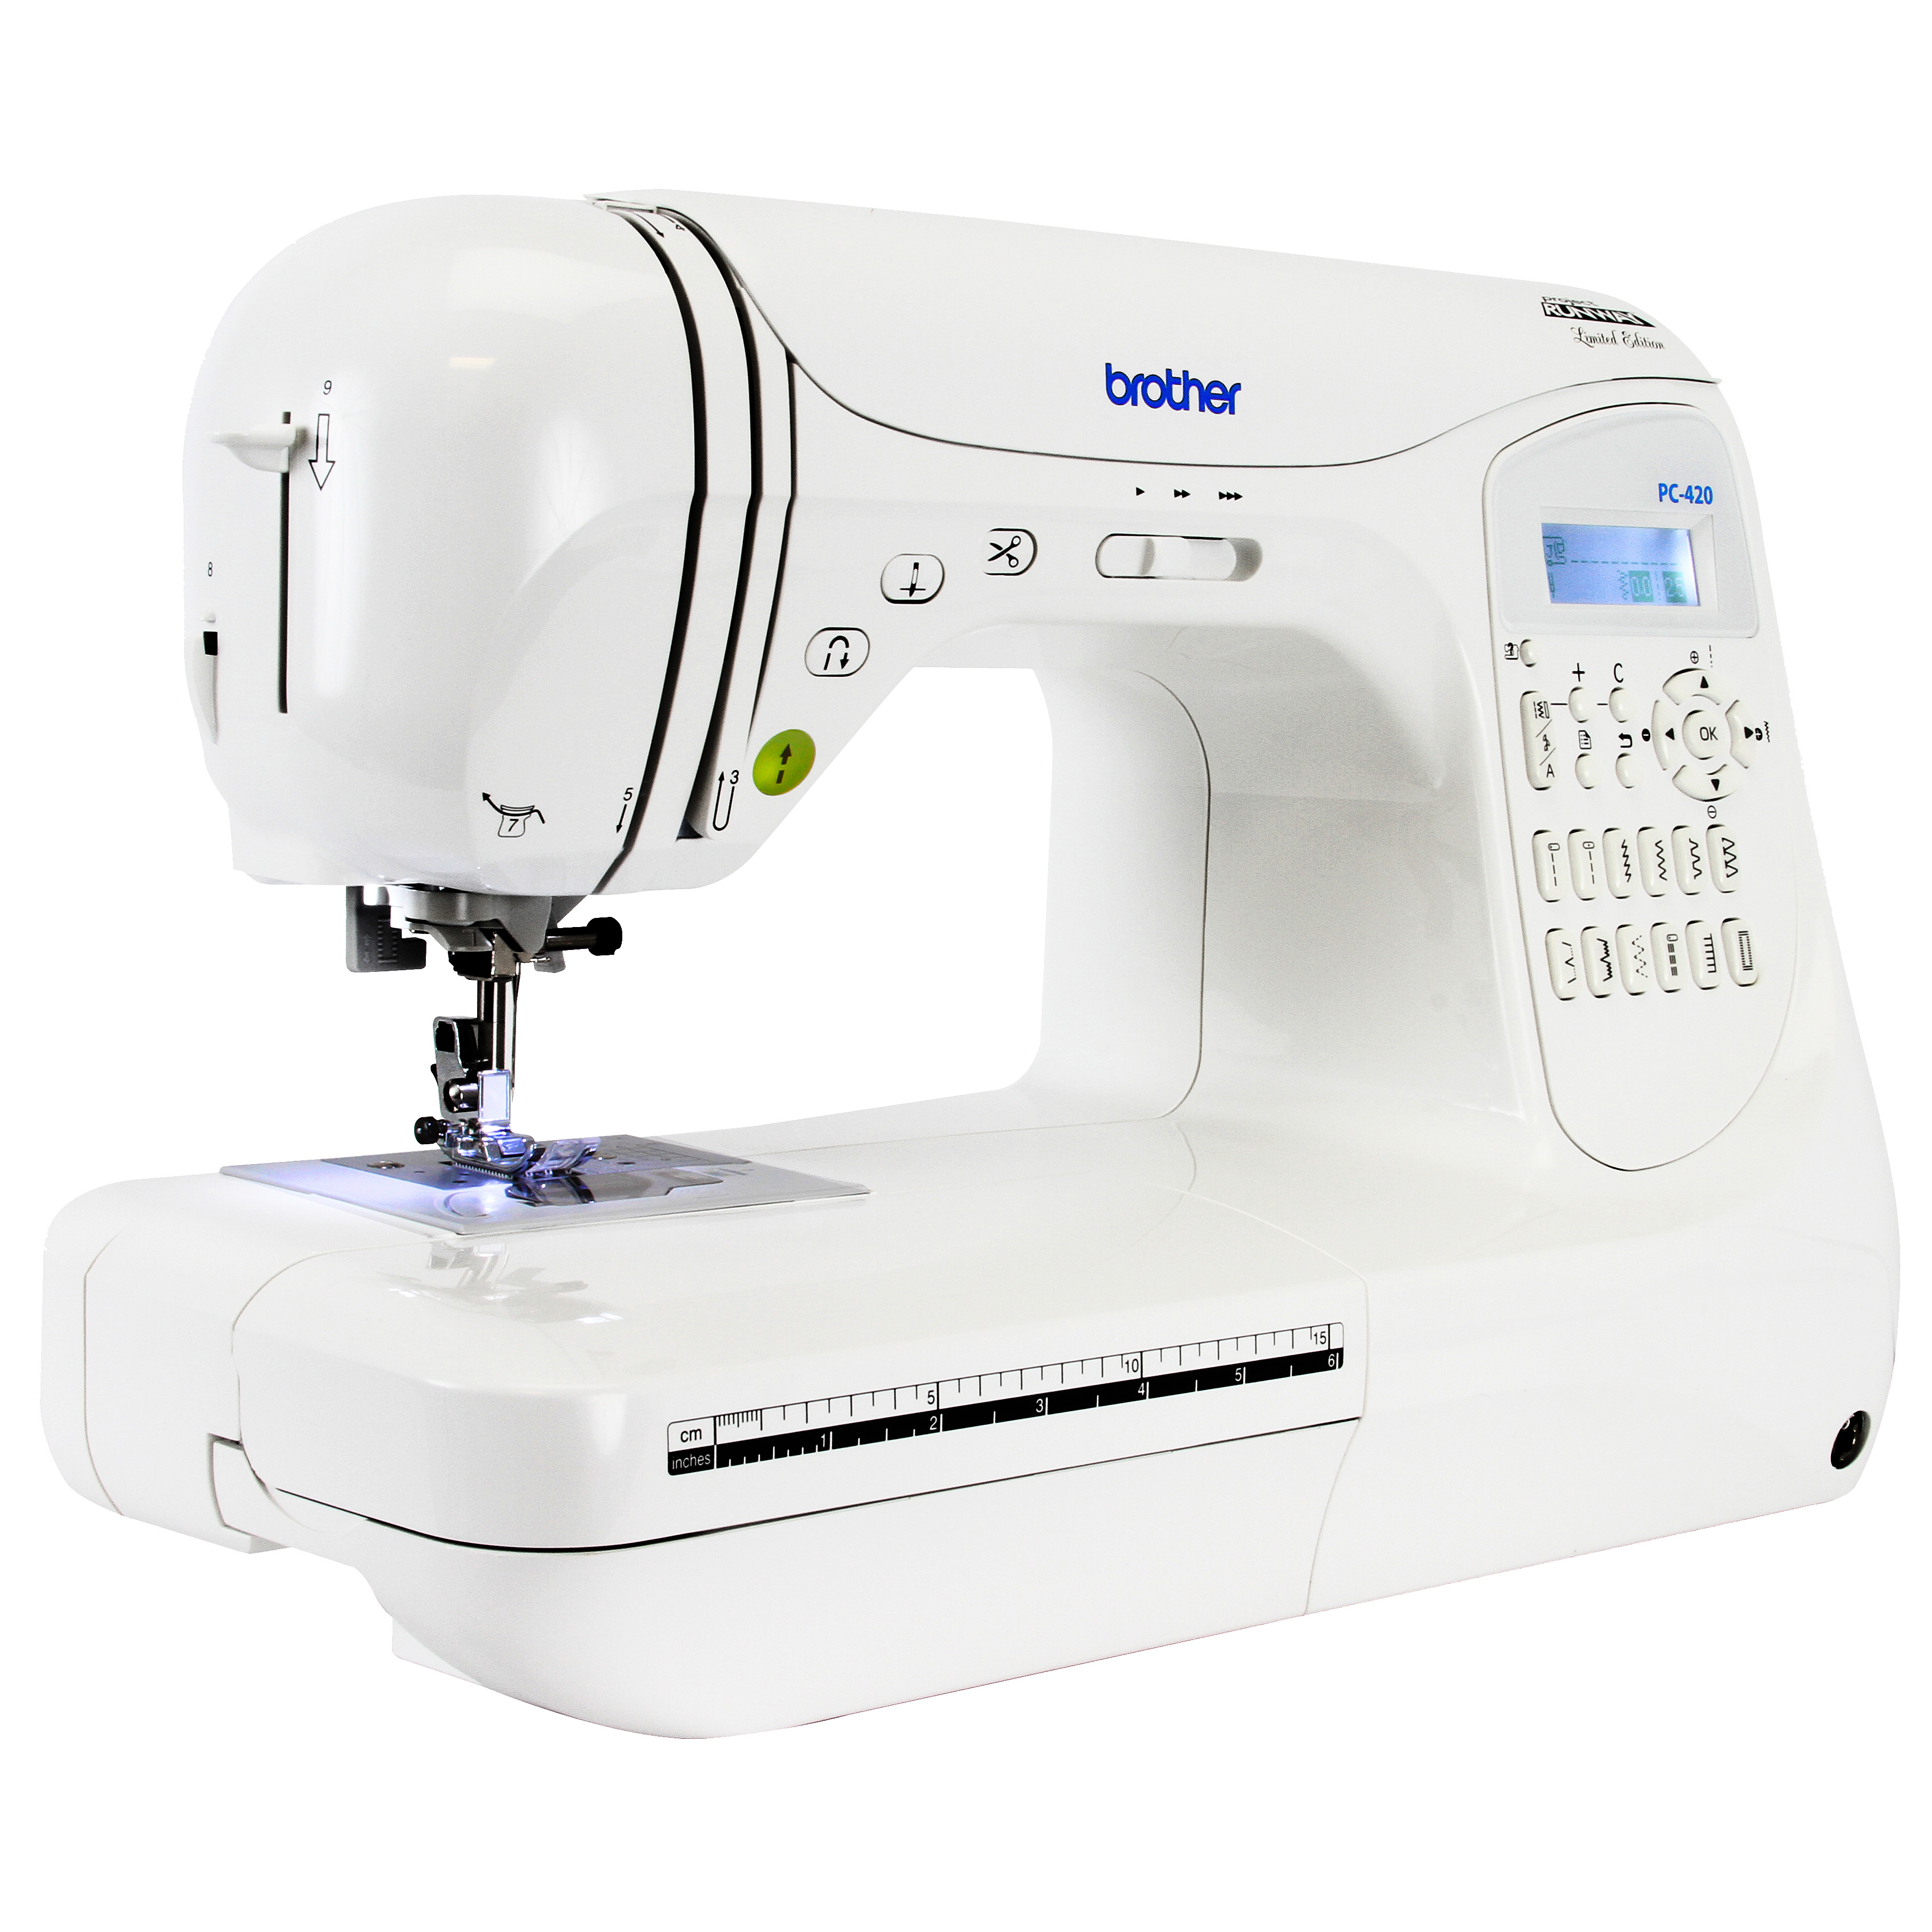 pc 420 sewing machine reviews